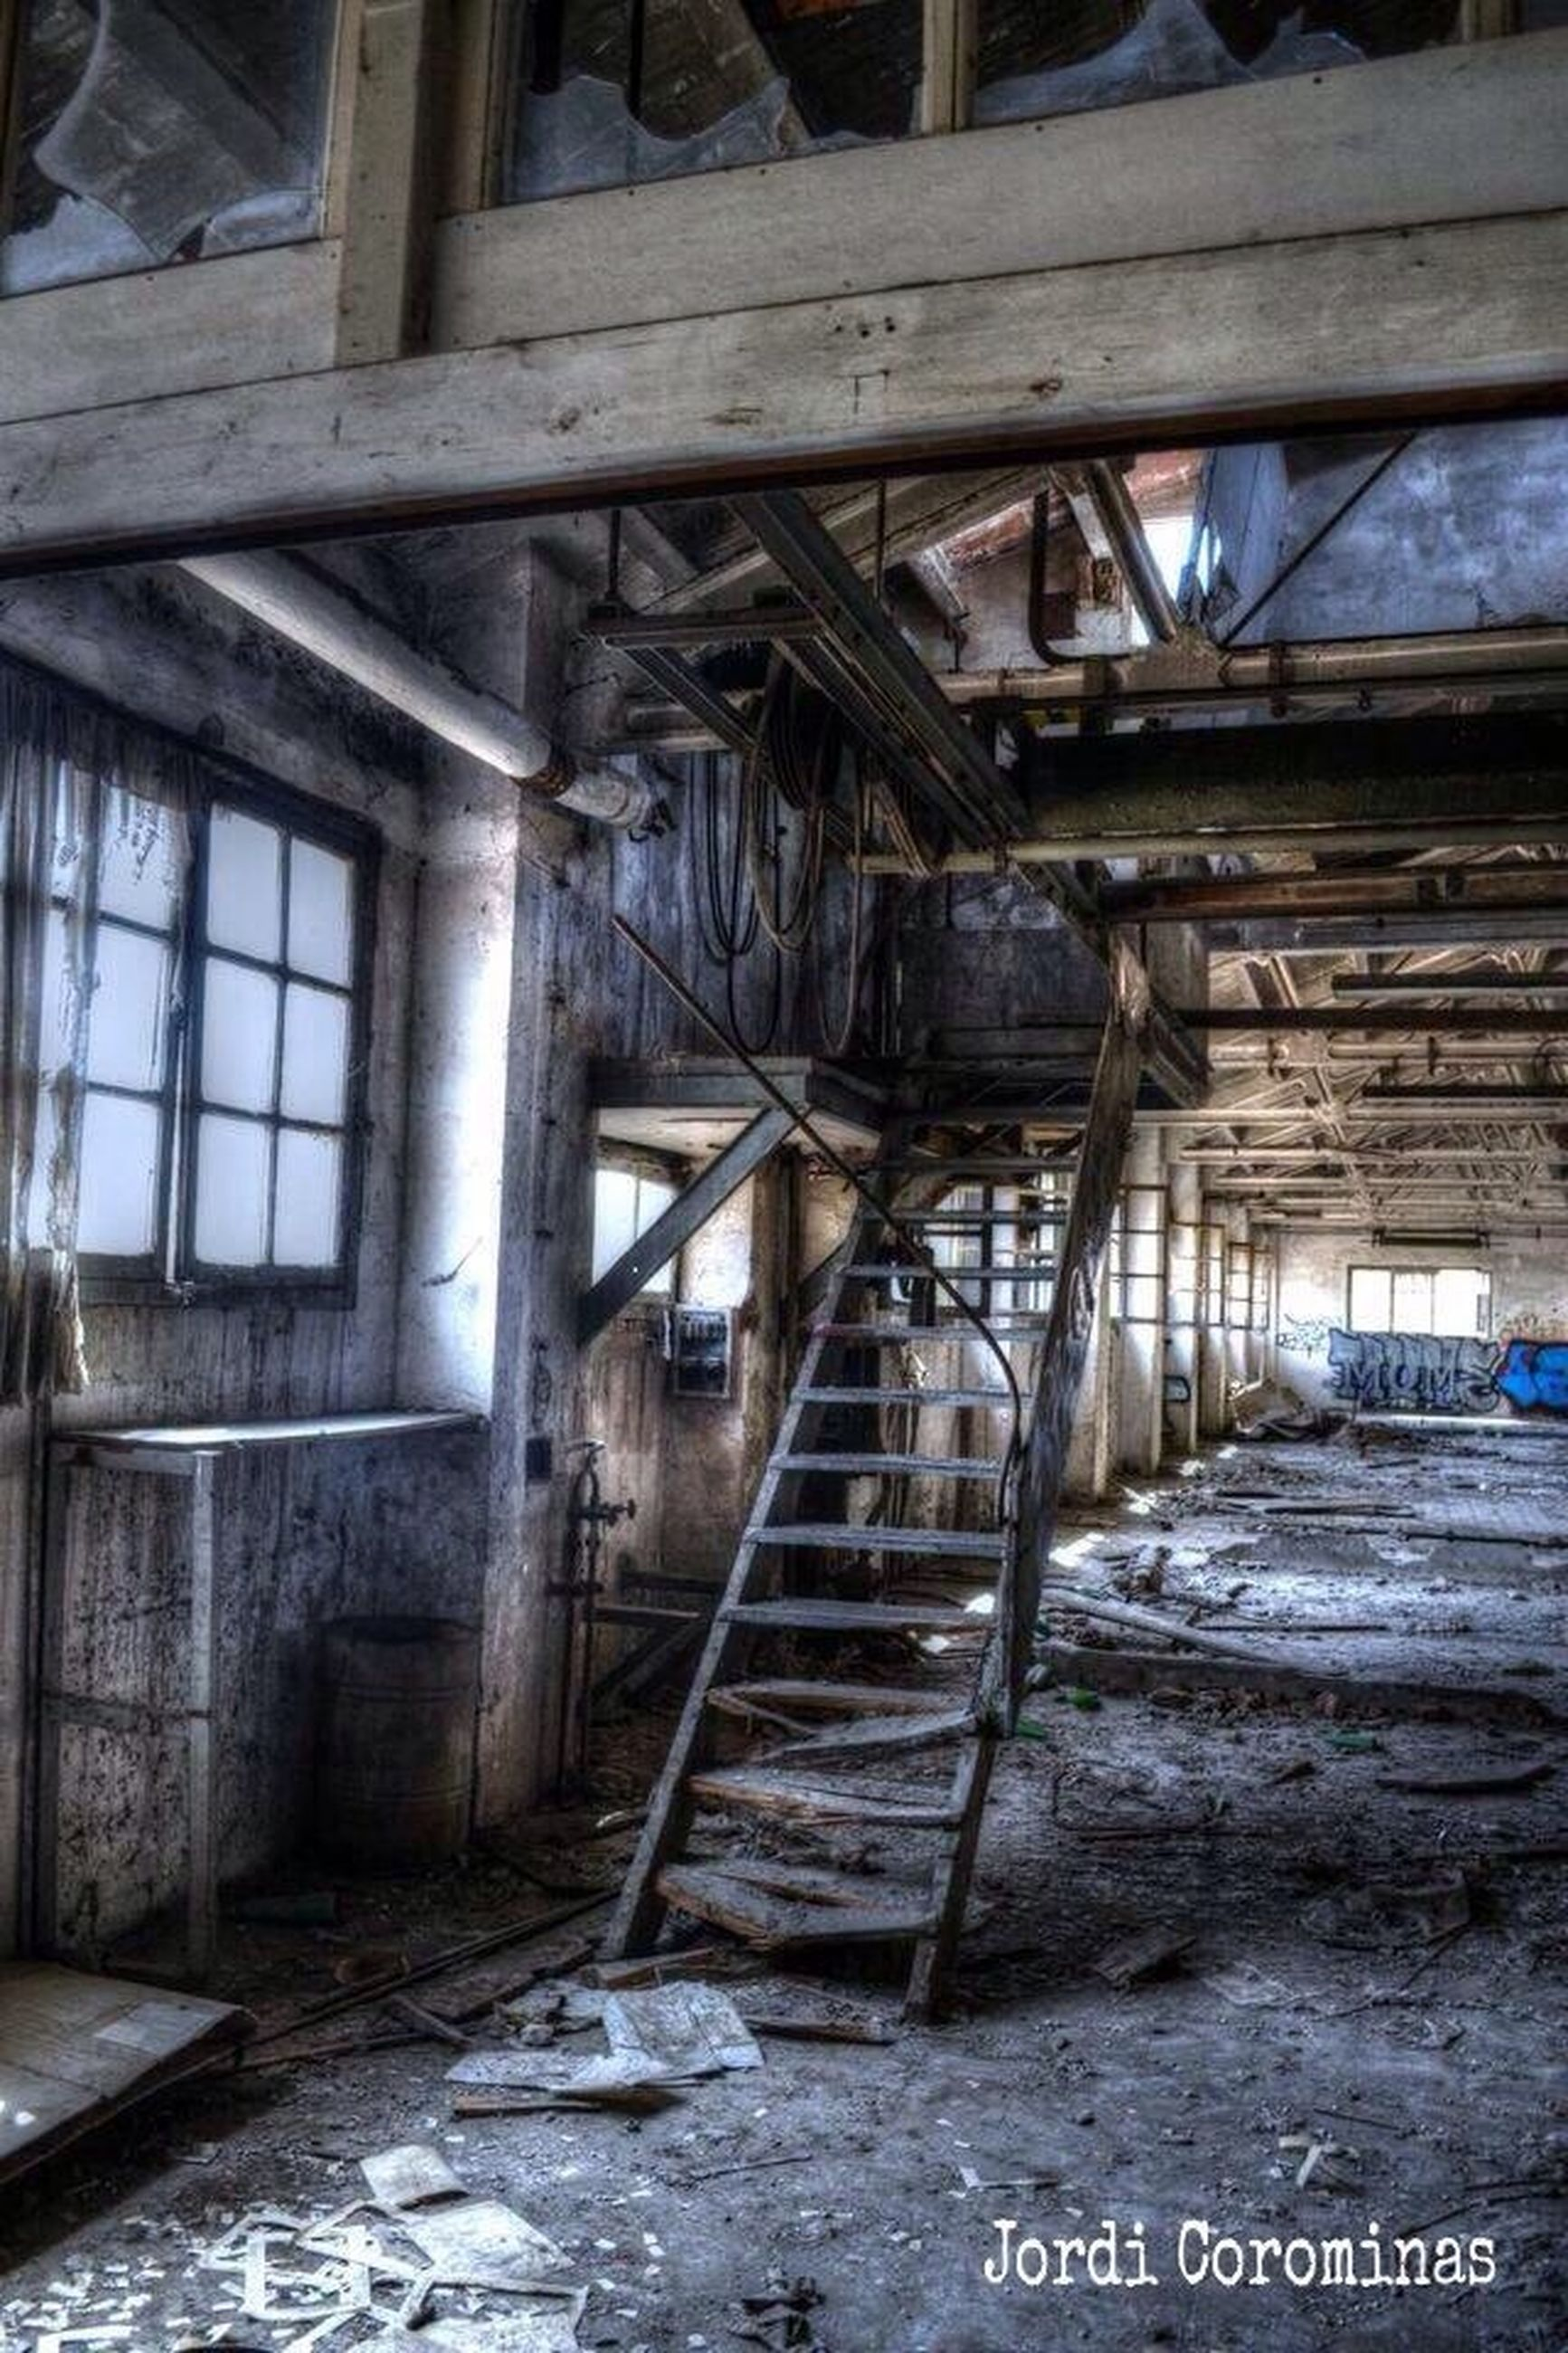 built structure, architecture, abandoned, obsolete, old, damaged, run-down, deterioration, building exterior, weathered, wood - material, bad condition, graffiti, building, house, indoors, day, destruction, interior, wall - building feature